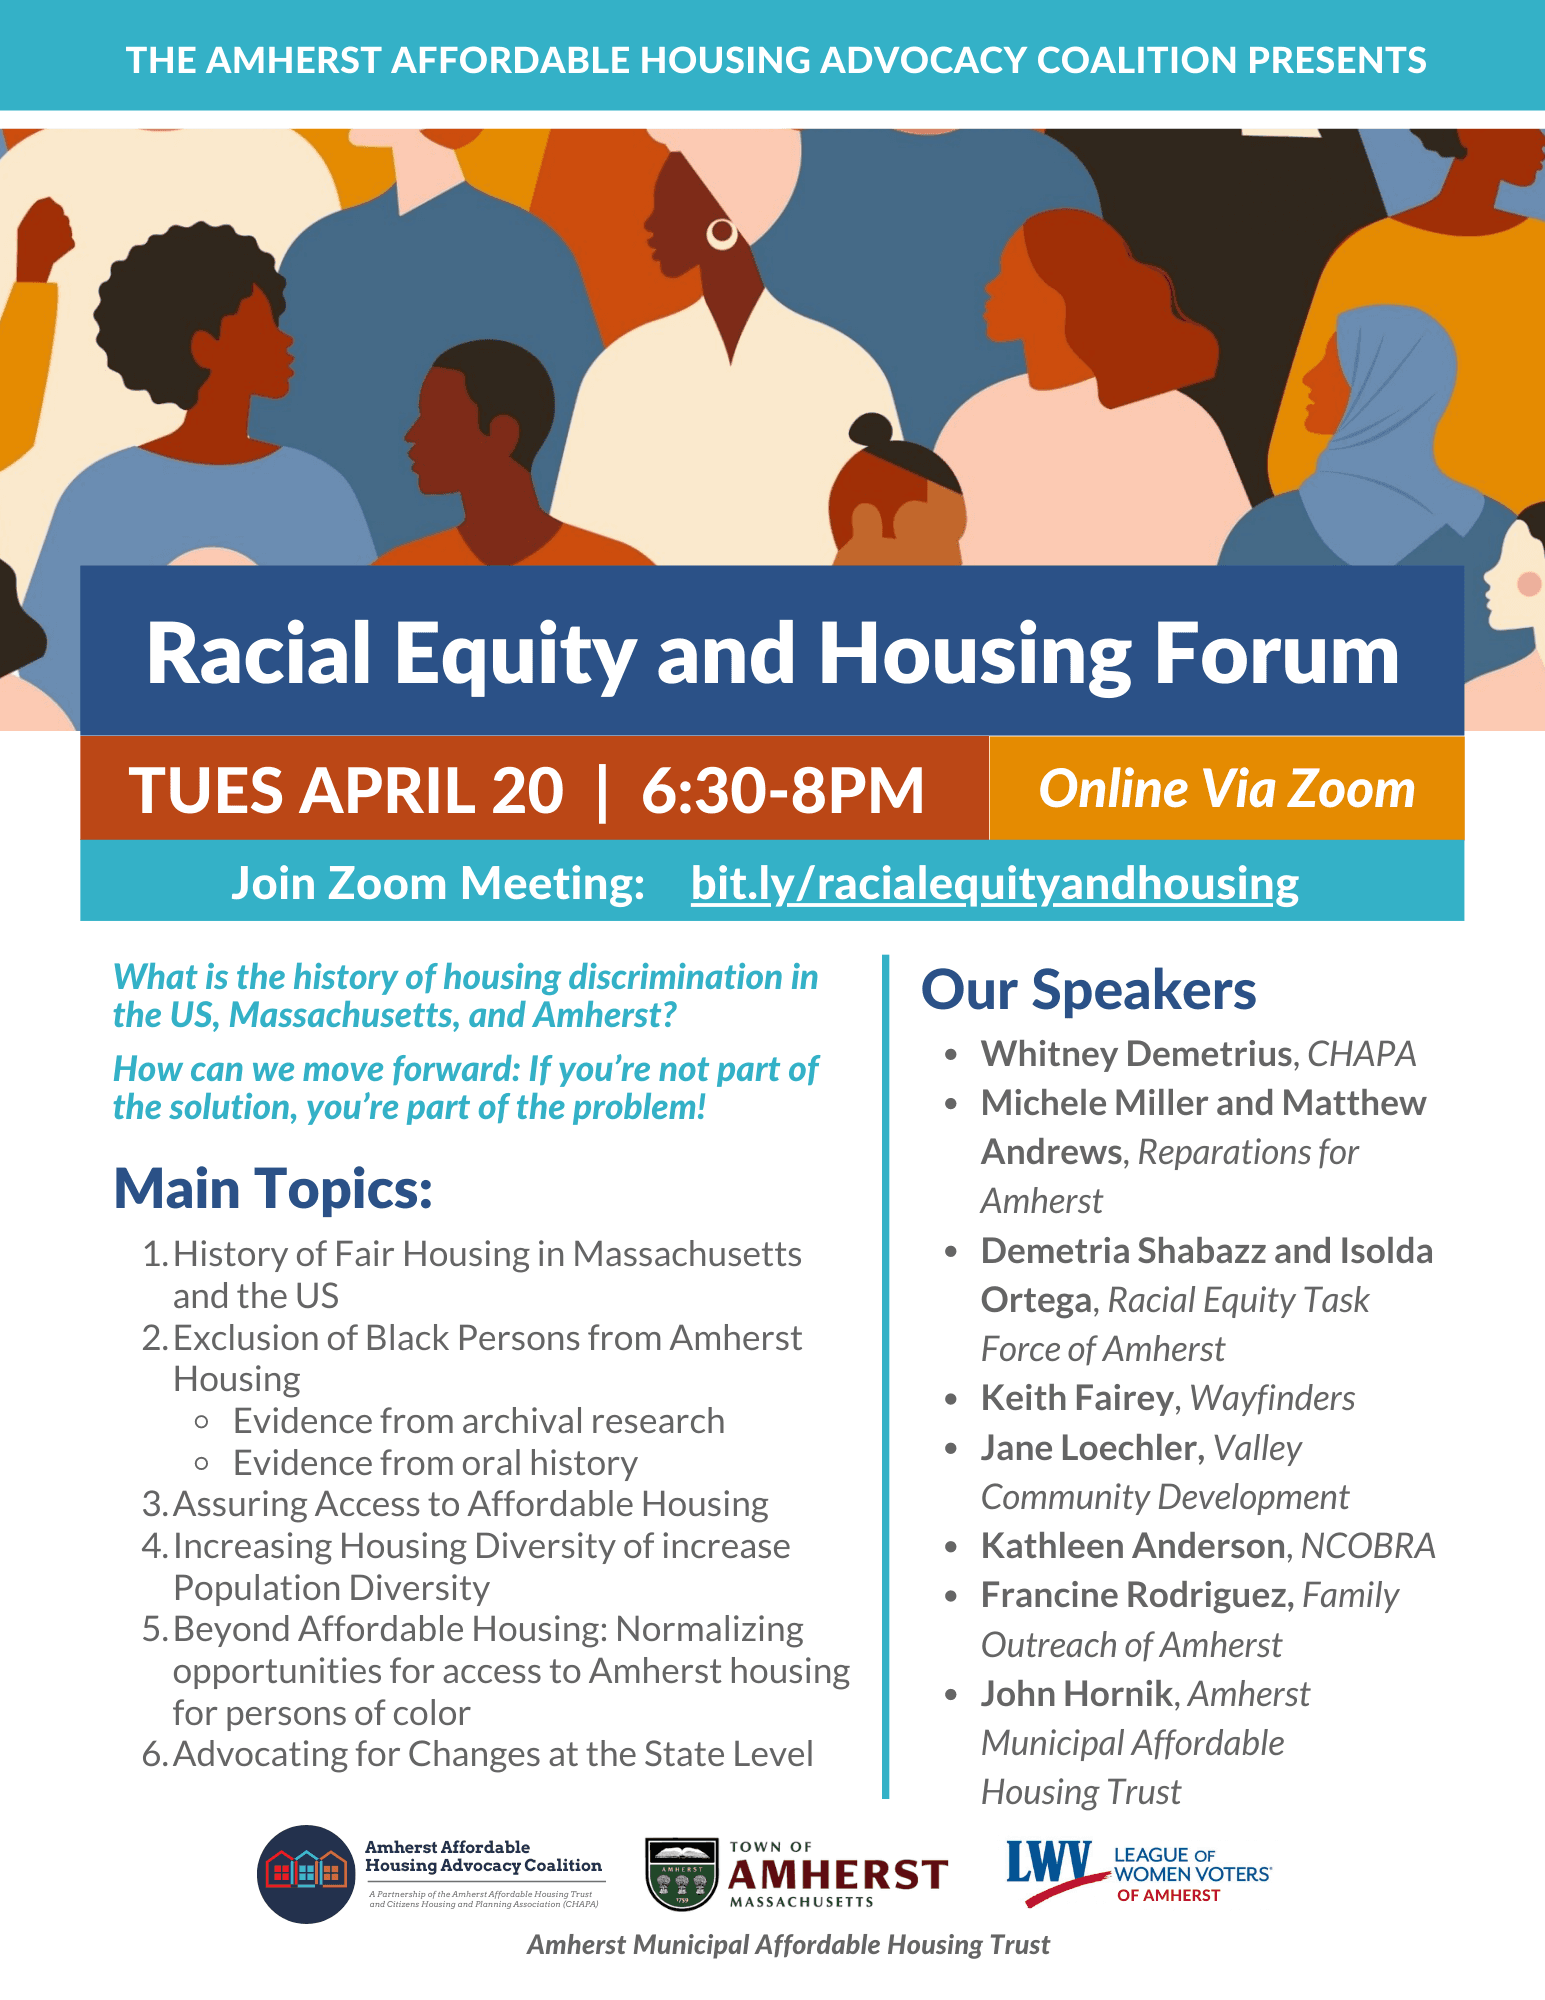 Racial Equity and Housing Forum Flyer